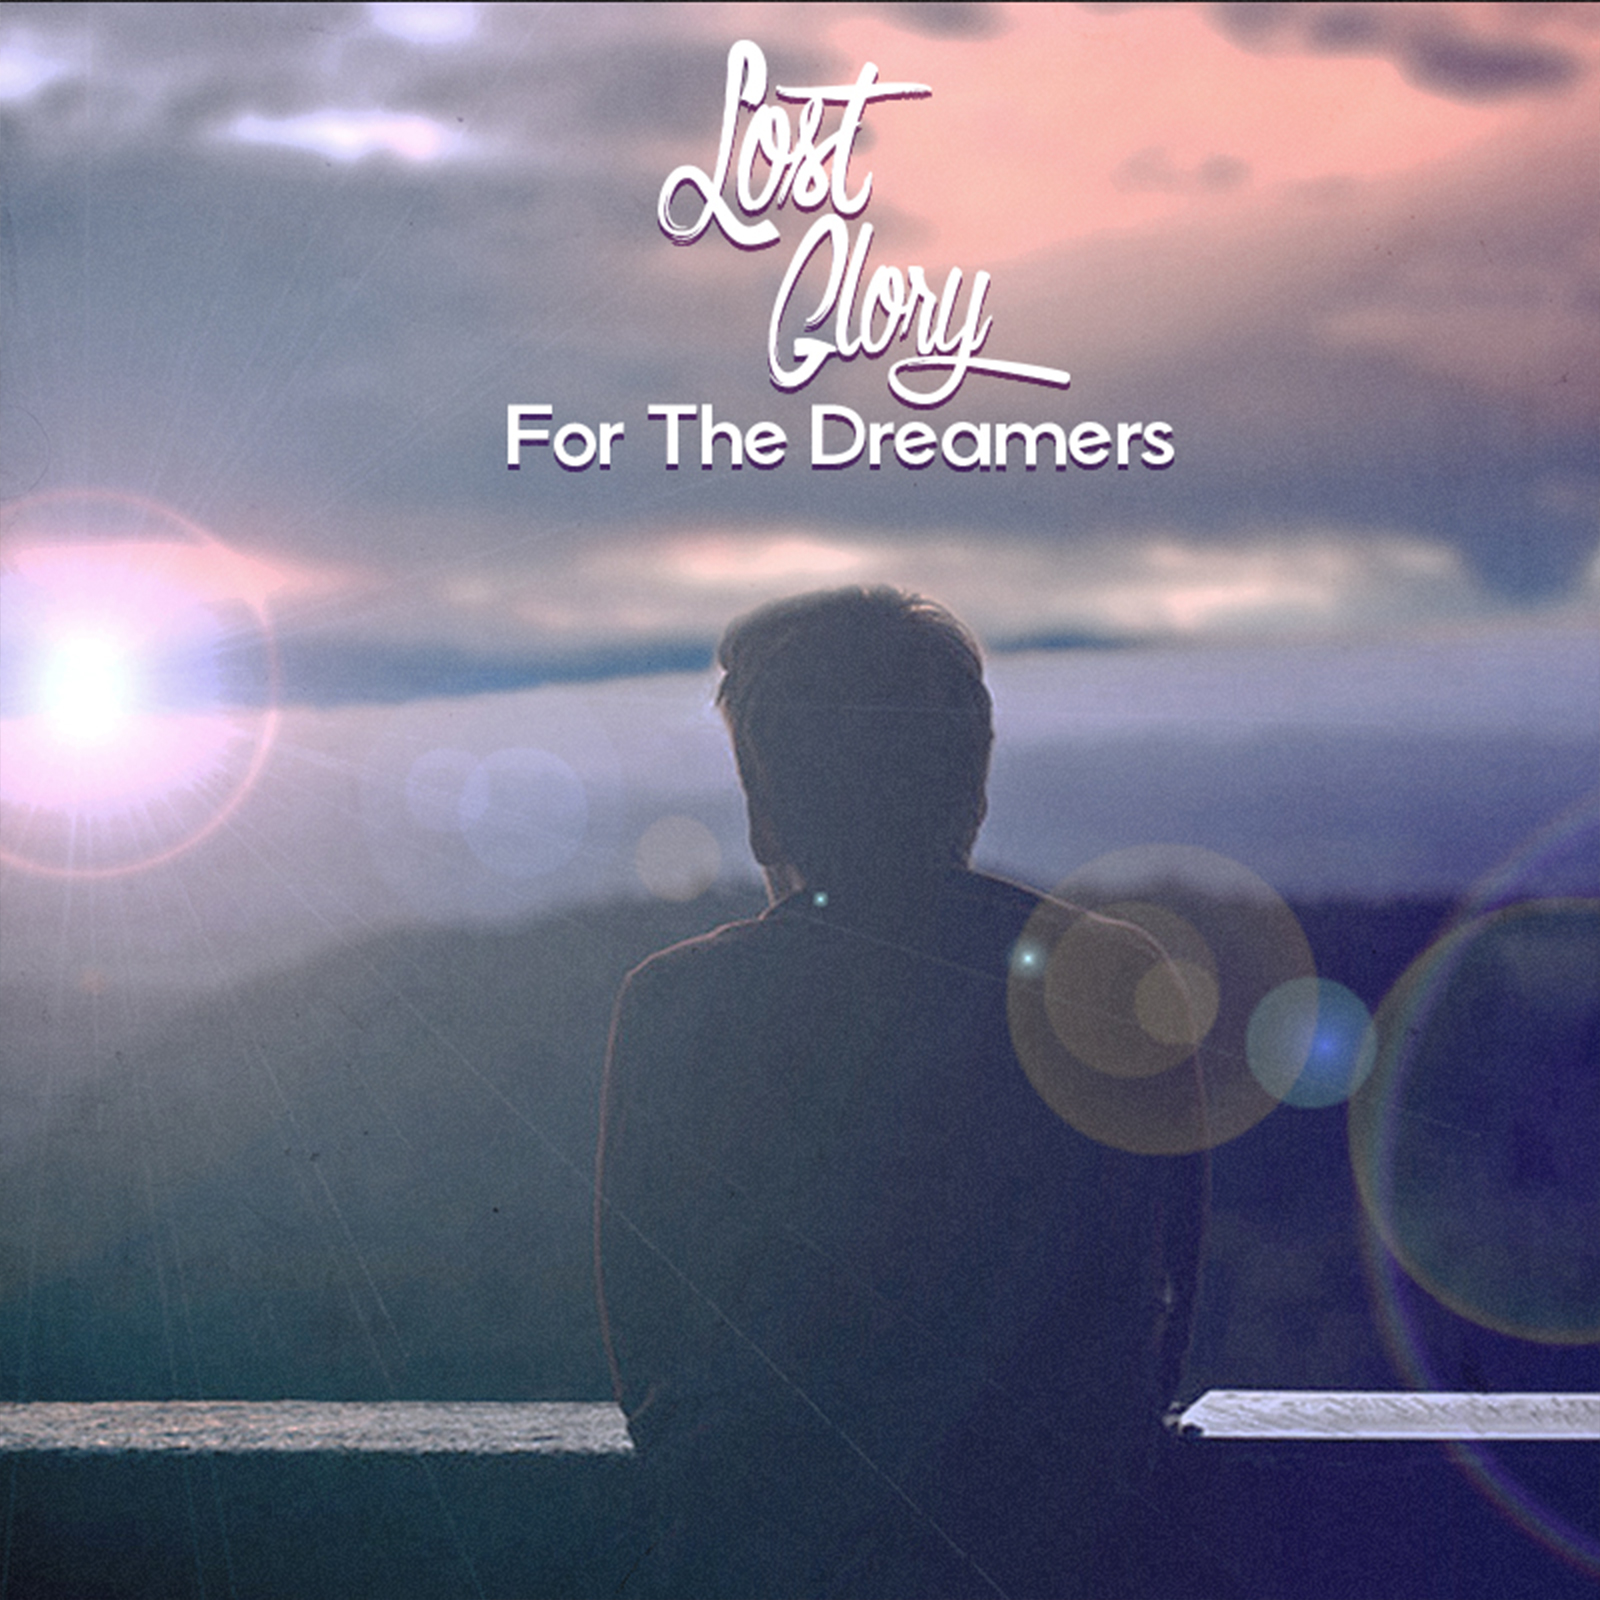 Lost Glory // For The Dreamers